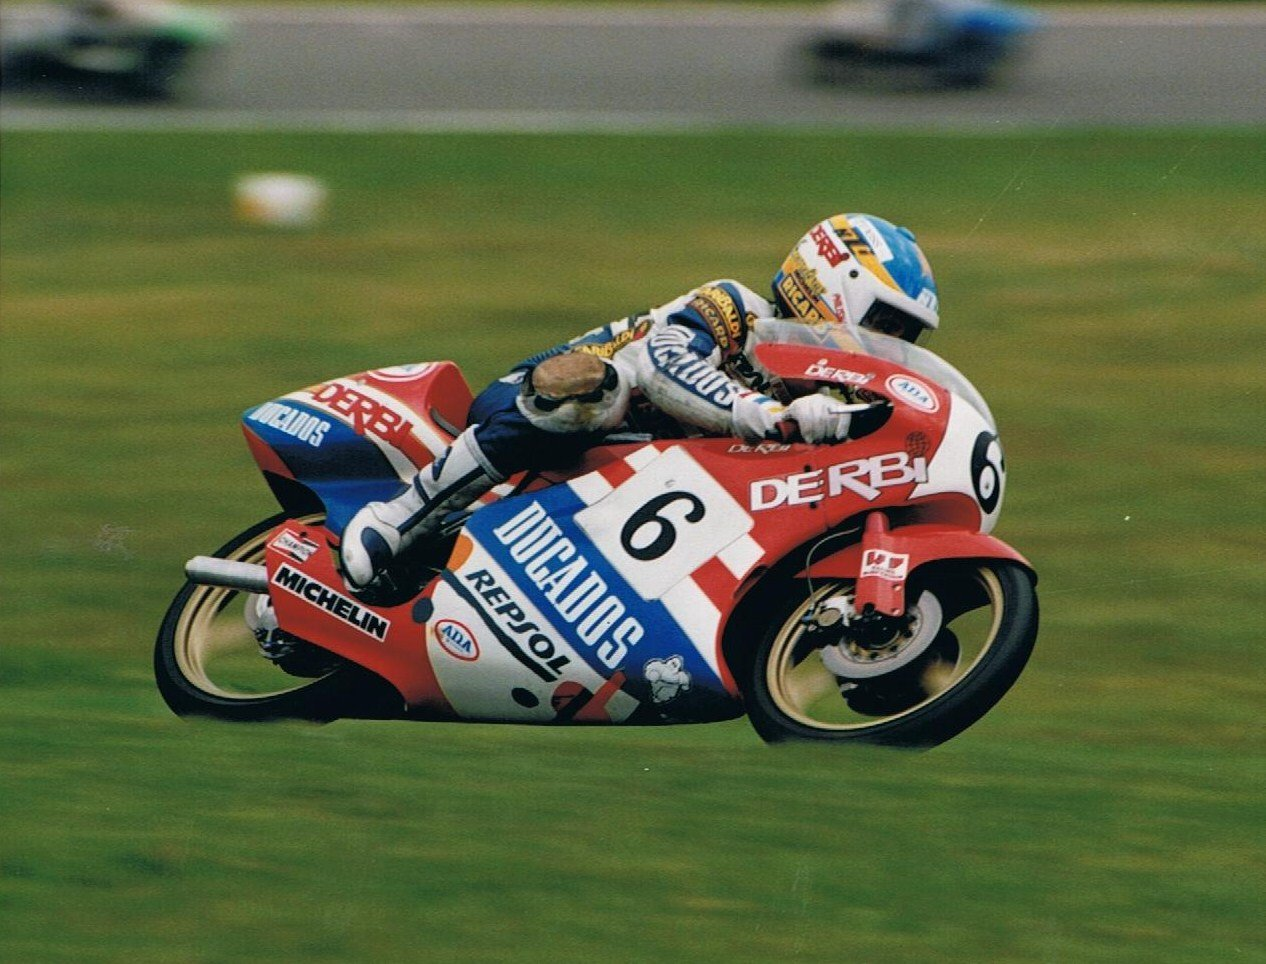 Alex Criville at Assen, 1988. Credit: Phil Wain's Family Archive